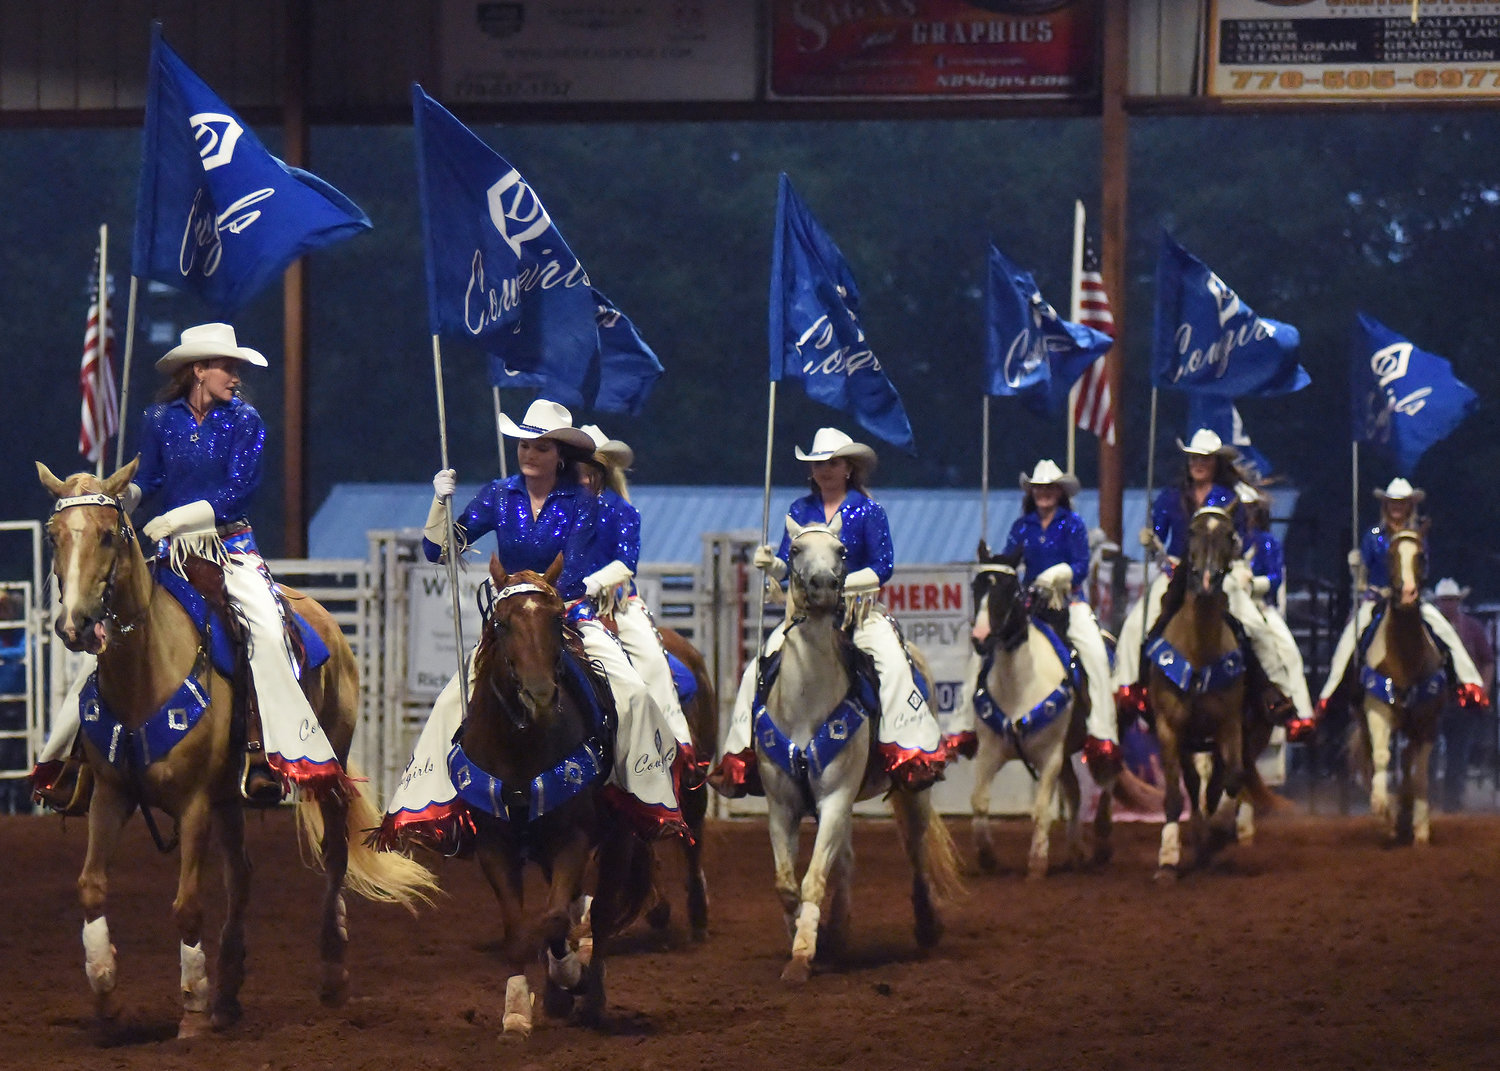 The Diamond D Cowgirls, of Mansfield, performed during the 2018 Bartow County Championship Rodeo.